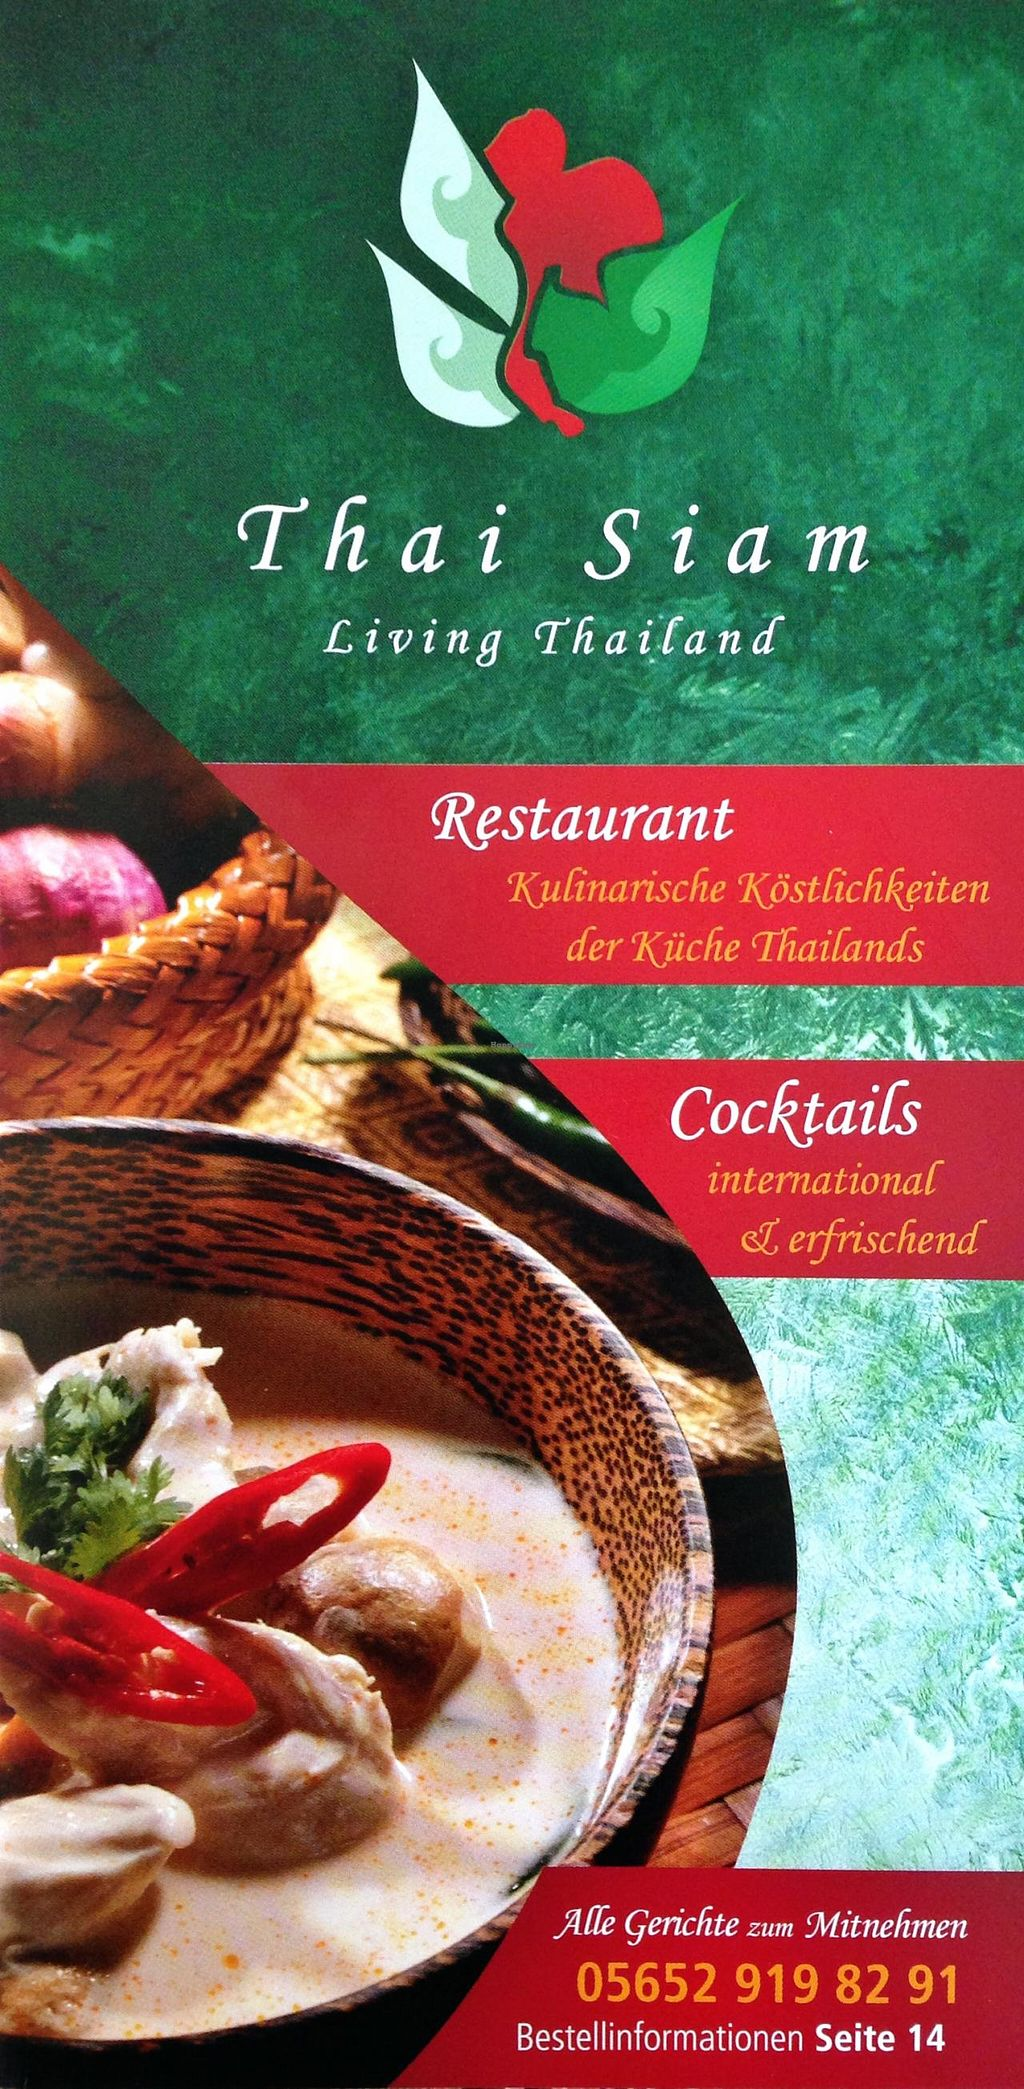 """Photo of Thai Siam - Living Thailand  by <a href=""""/members/profile/MangoTango"""">MangoTango</a> <br/>Promotional flyer <br/> March 8, 2015  - <a href='/contact/abuse/image/56292/95186'>Report</a>"""